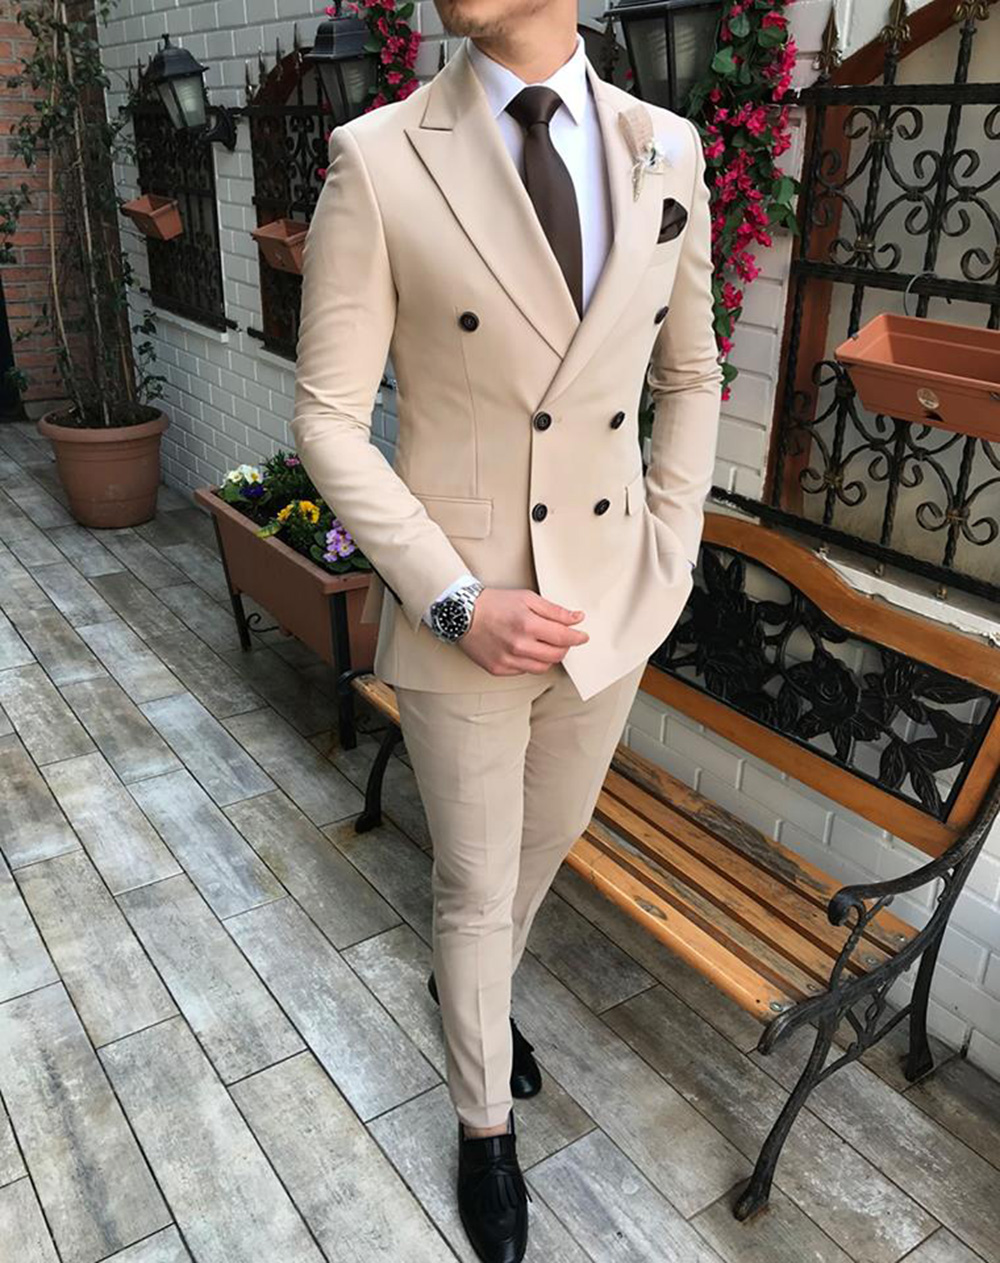 Solovedress Mens Solid Suit Premium Wedding Tuxedos Slim Fit 2 Piece Prom Blazer Tux Vest & Trousers Burgundy Double Breasted